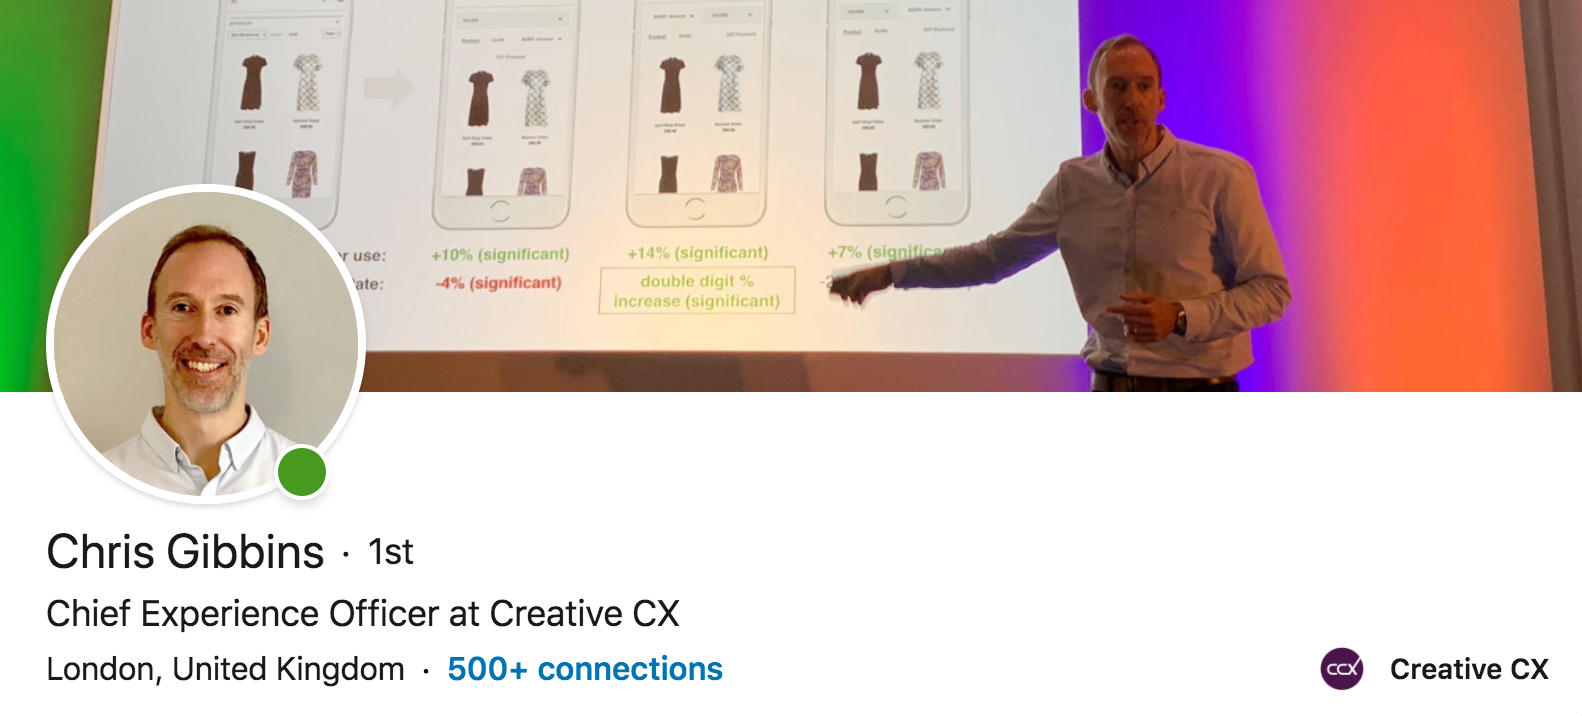 Chris Gibbins CXO talks about the evolution of ux design and experimental product design at an event